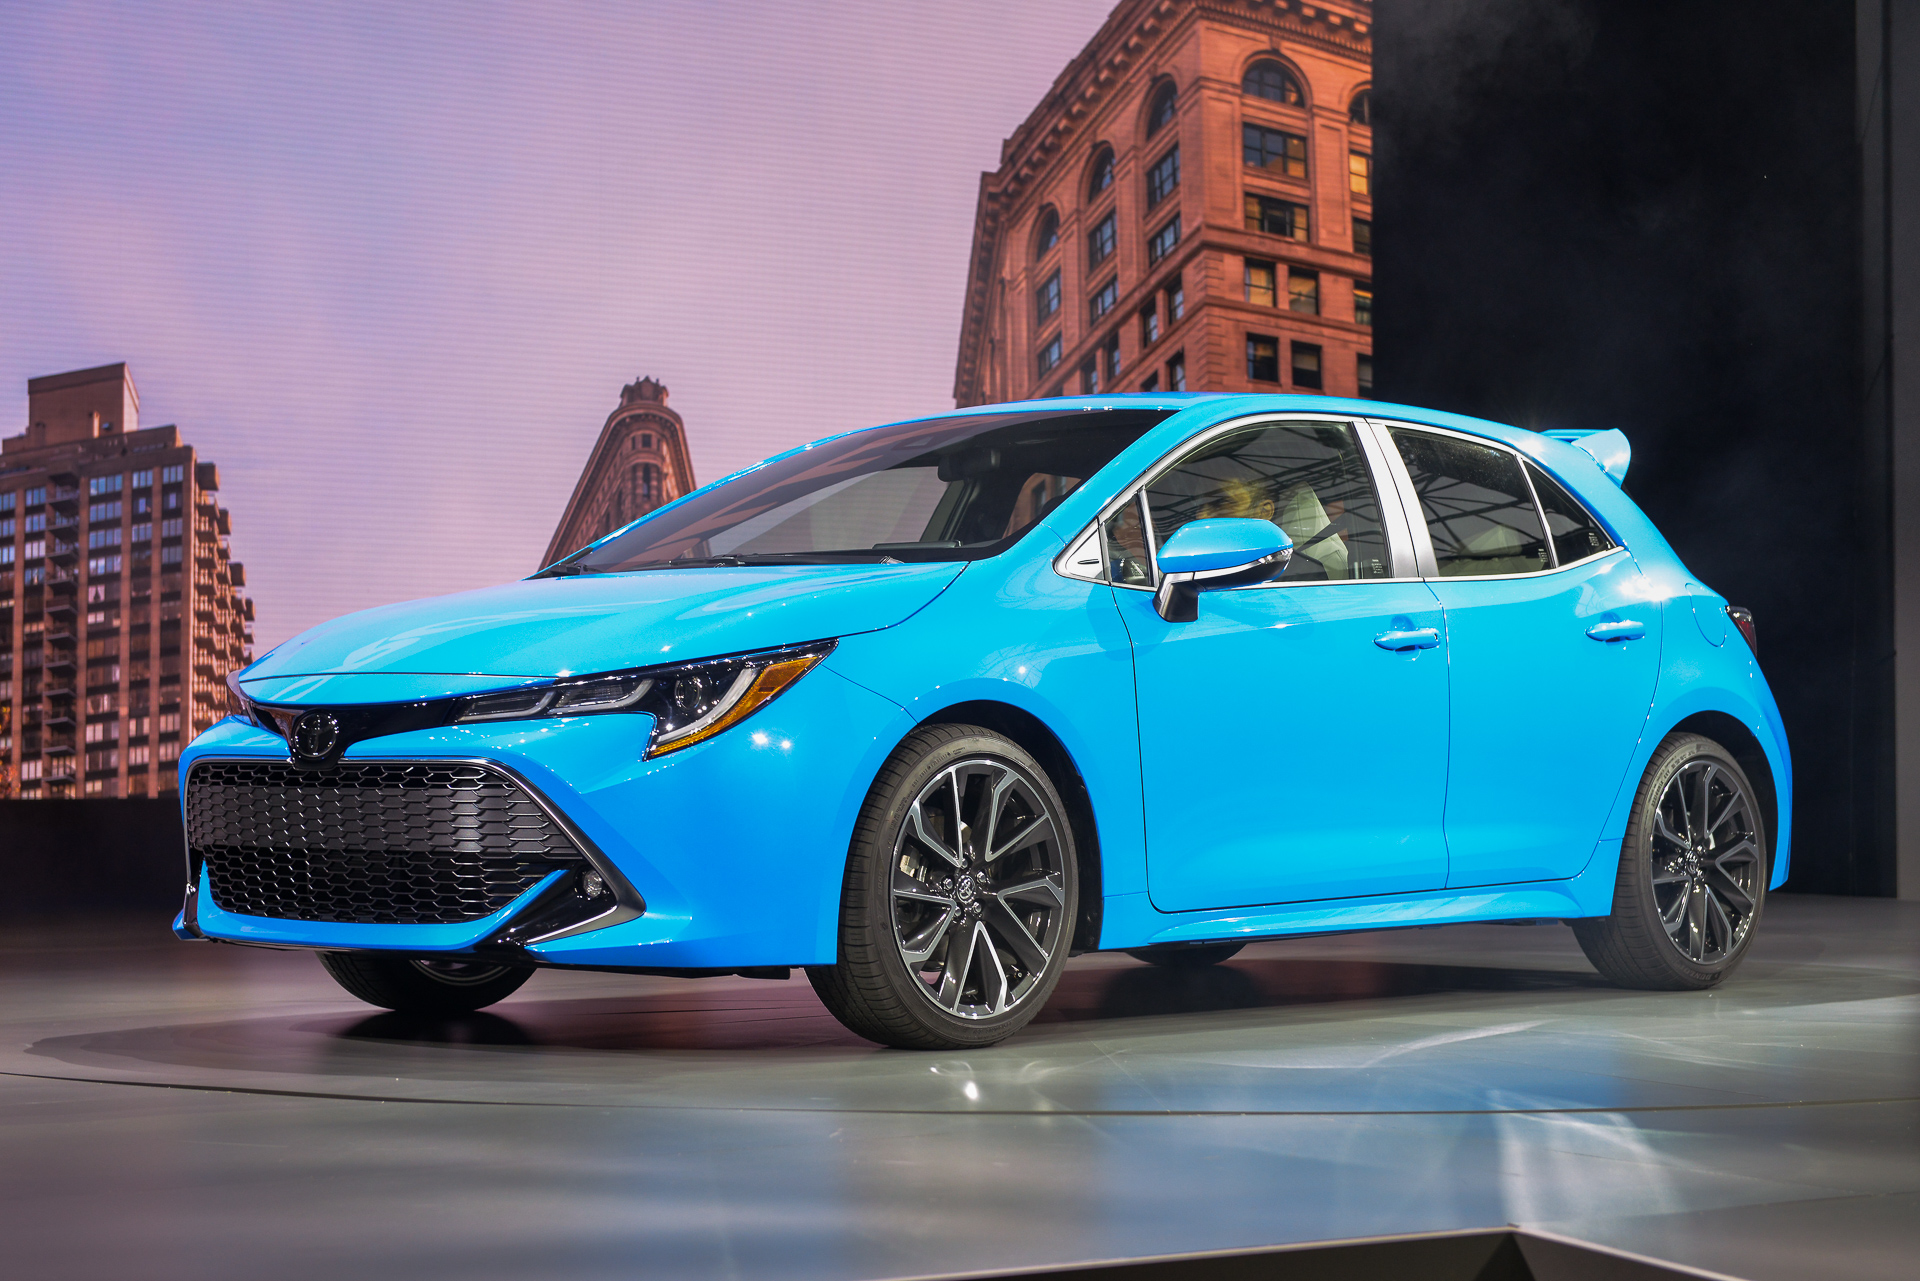 2019 toyota corolla hatchback a most international compact car. Black Bedroom Furniture Sets. Home Design Ideas